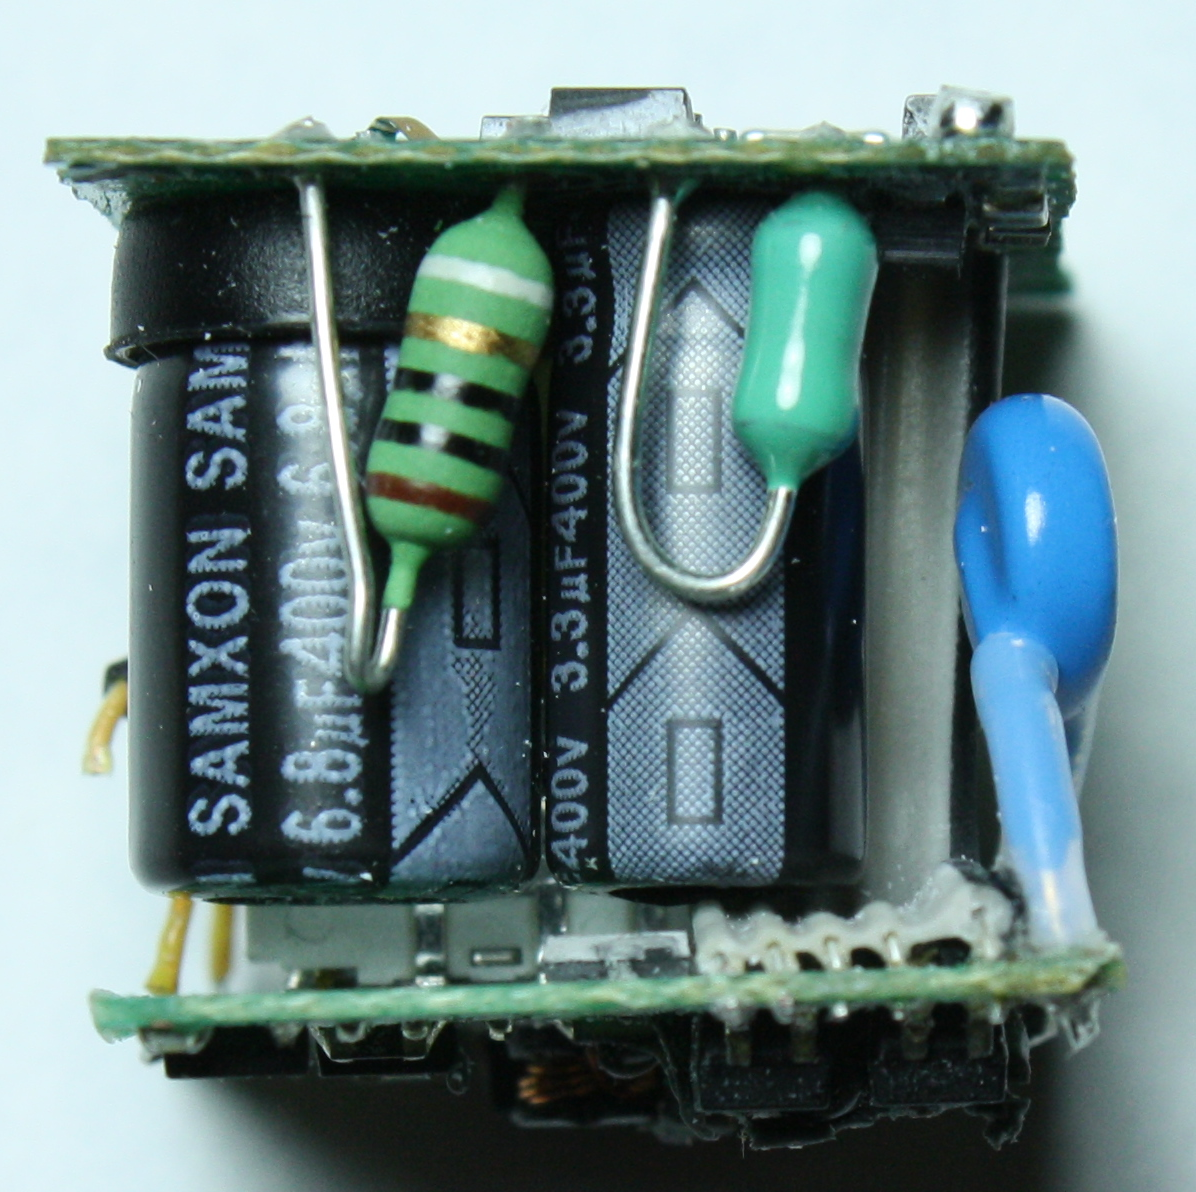 Apple Iphone Charger Teardown Quality In A Tiny Expensive Package Schematic Diagram Come From Circuit Additional Power Supply For Usb Showing The Fusible Resistor Striped Inductor Green